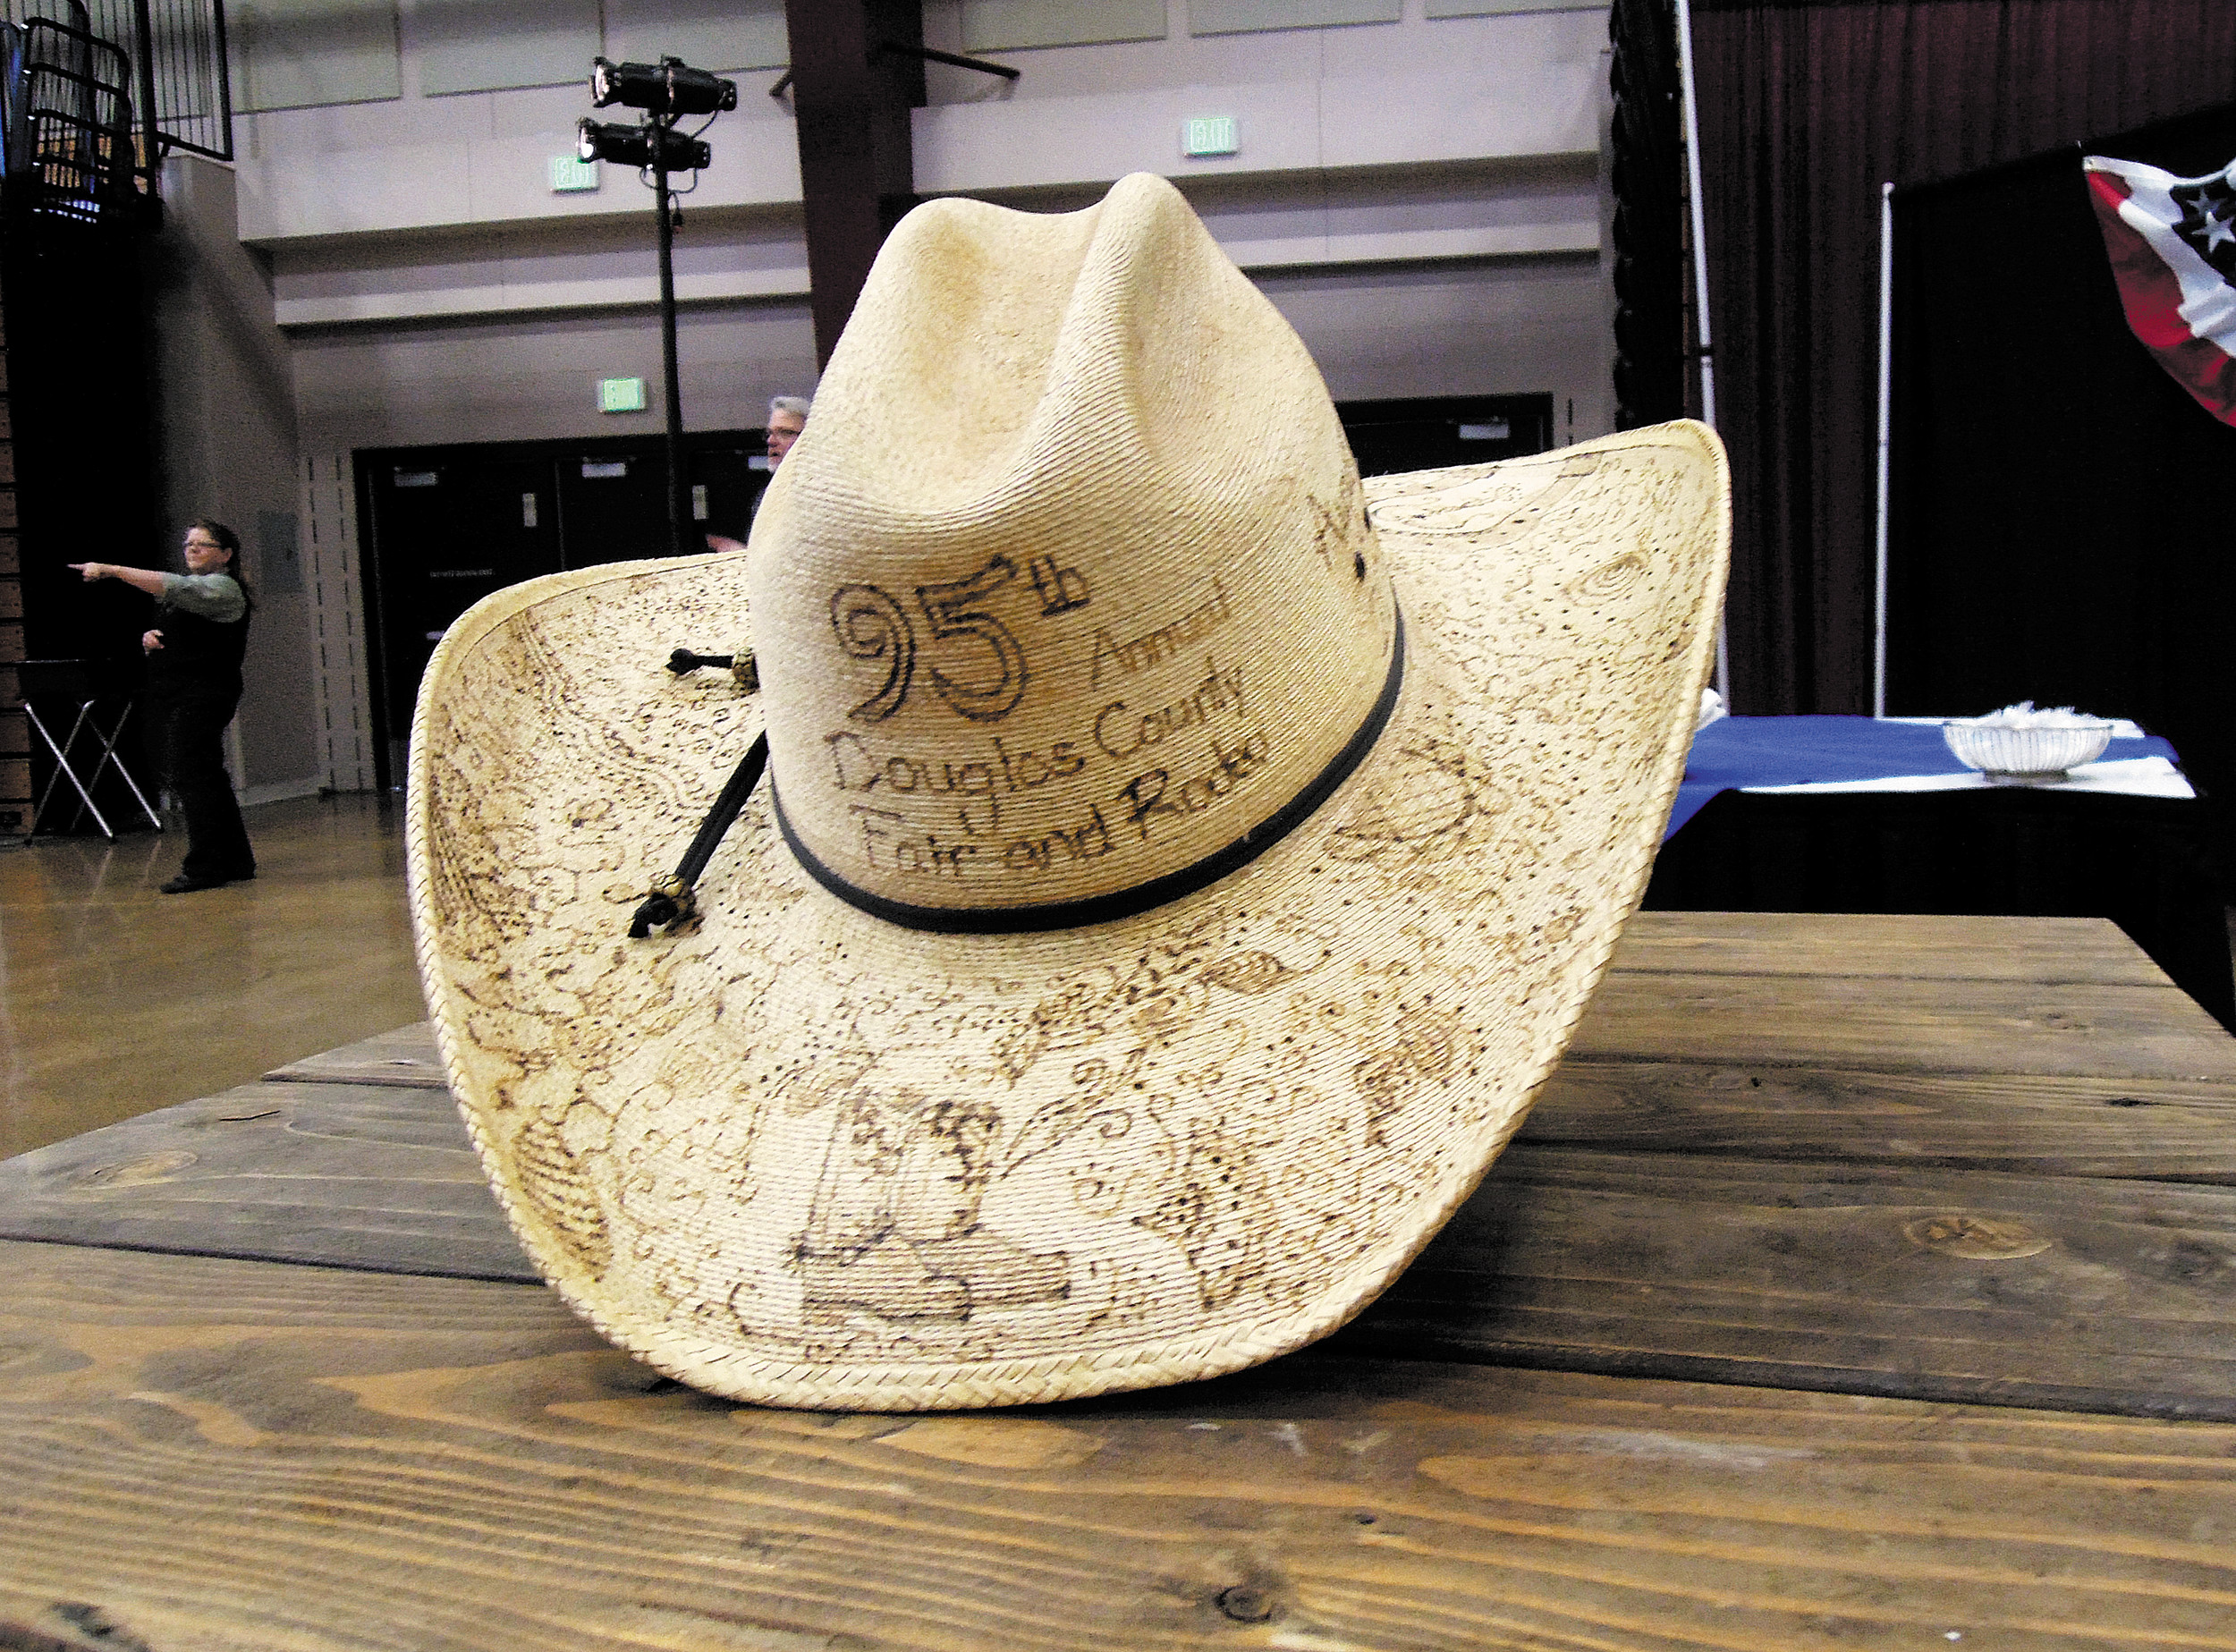 Items were auctioned off at the inagural Cowboy Ball May 6 to raise money for the Douglas County Fair Foundation.